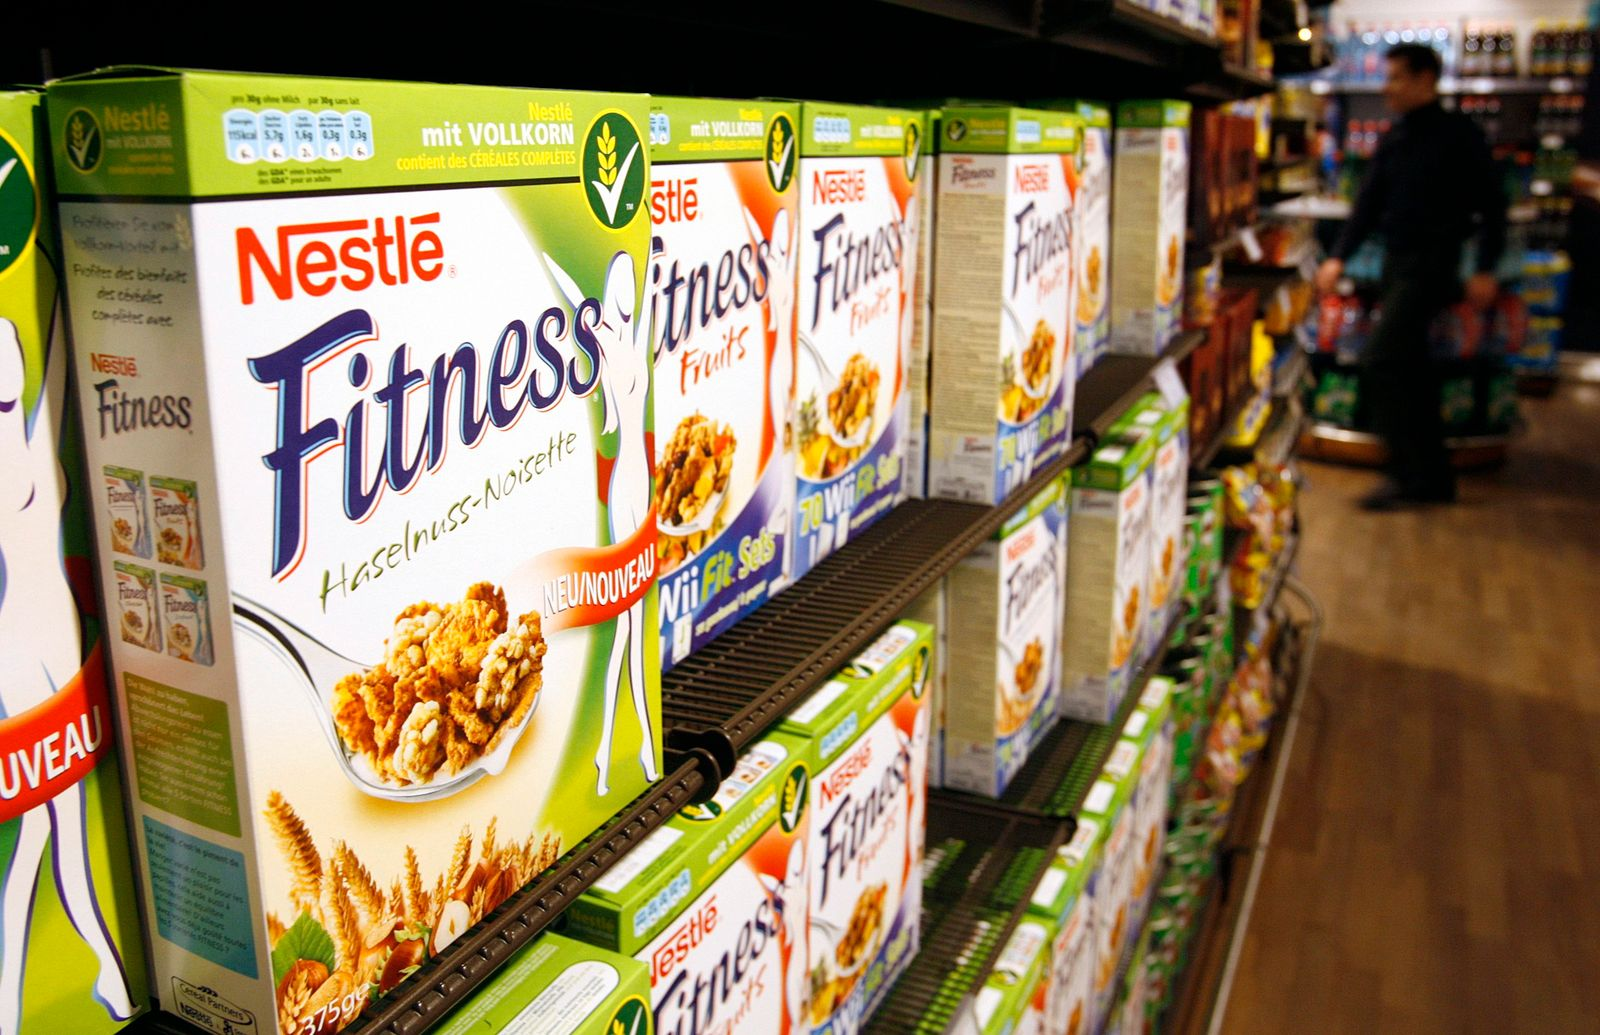 Cereal boxes are pictured in the employees' supermarket at the Nestle headquarters in Vevey